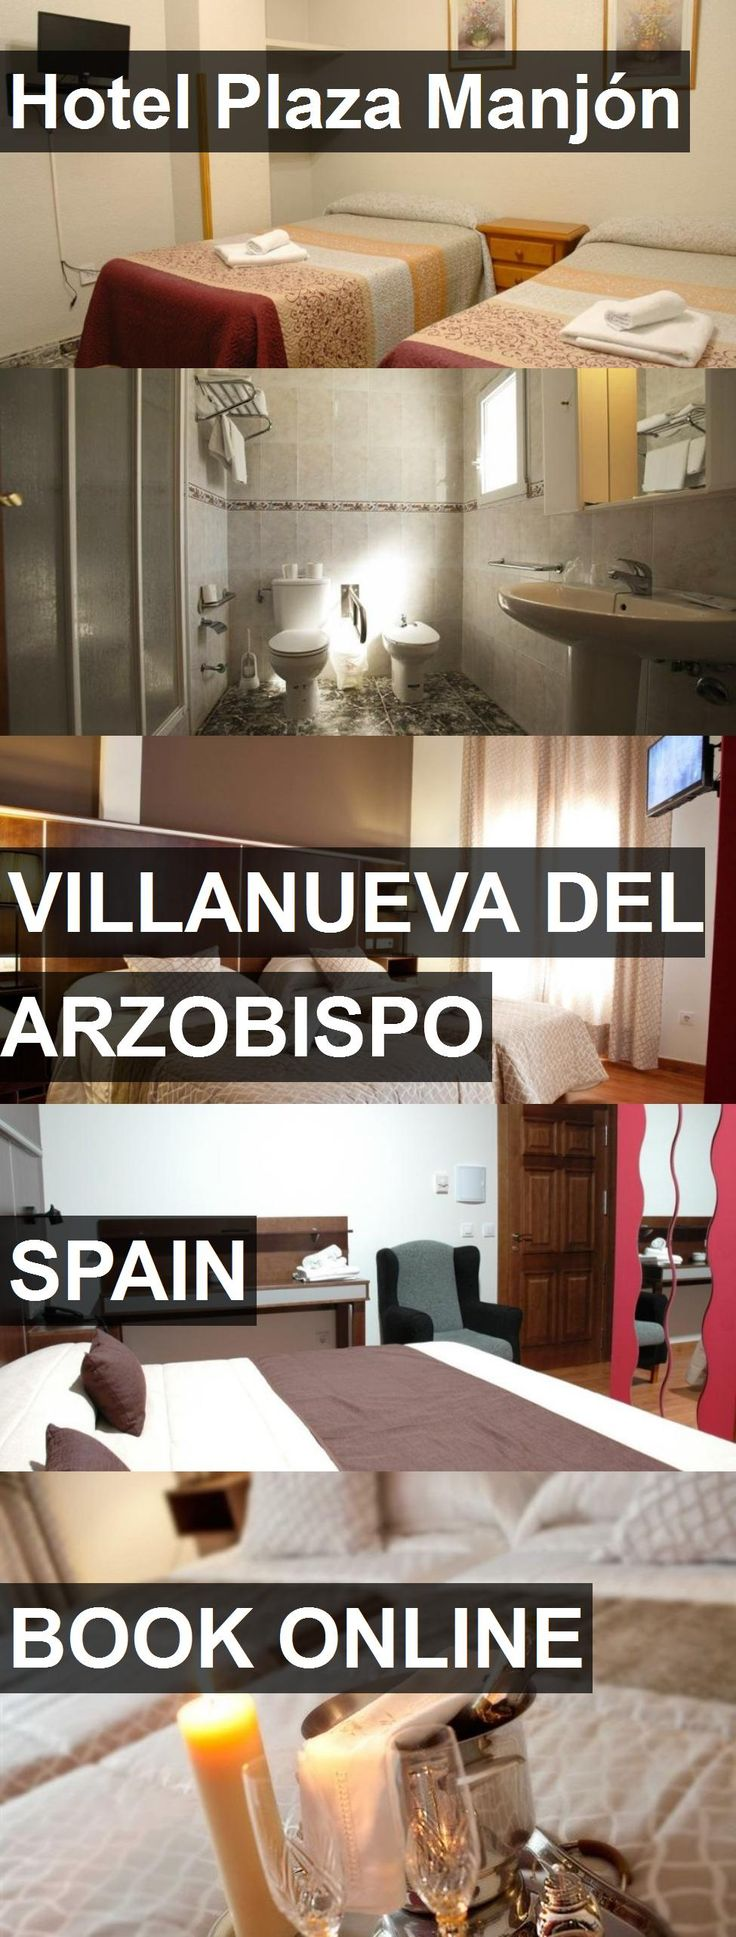 Hotel Hotel Plaza Manjón in Villanueva del Arzobispo, Spain. For more information, photos, reviews and best prices please follow the link. #Spain #VillanuevadelArzobispo #HotelPlazaManjón #hotel #travel #vacation